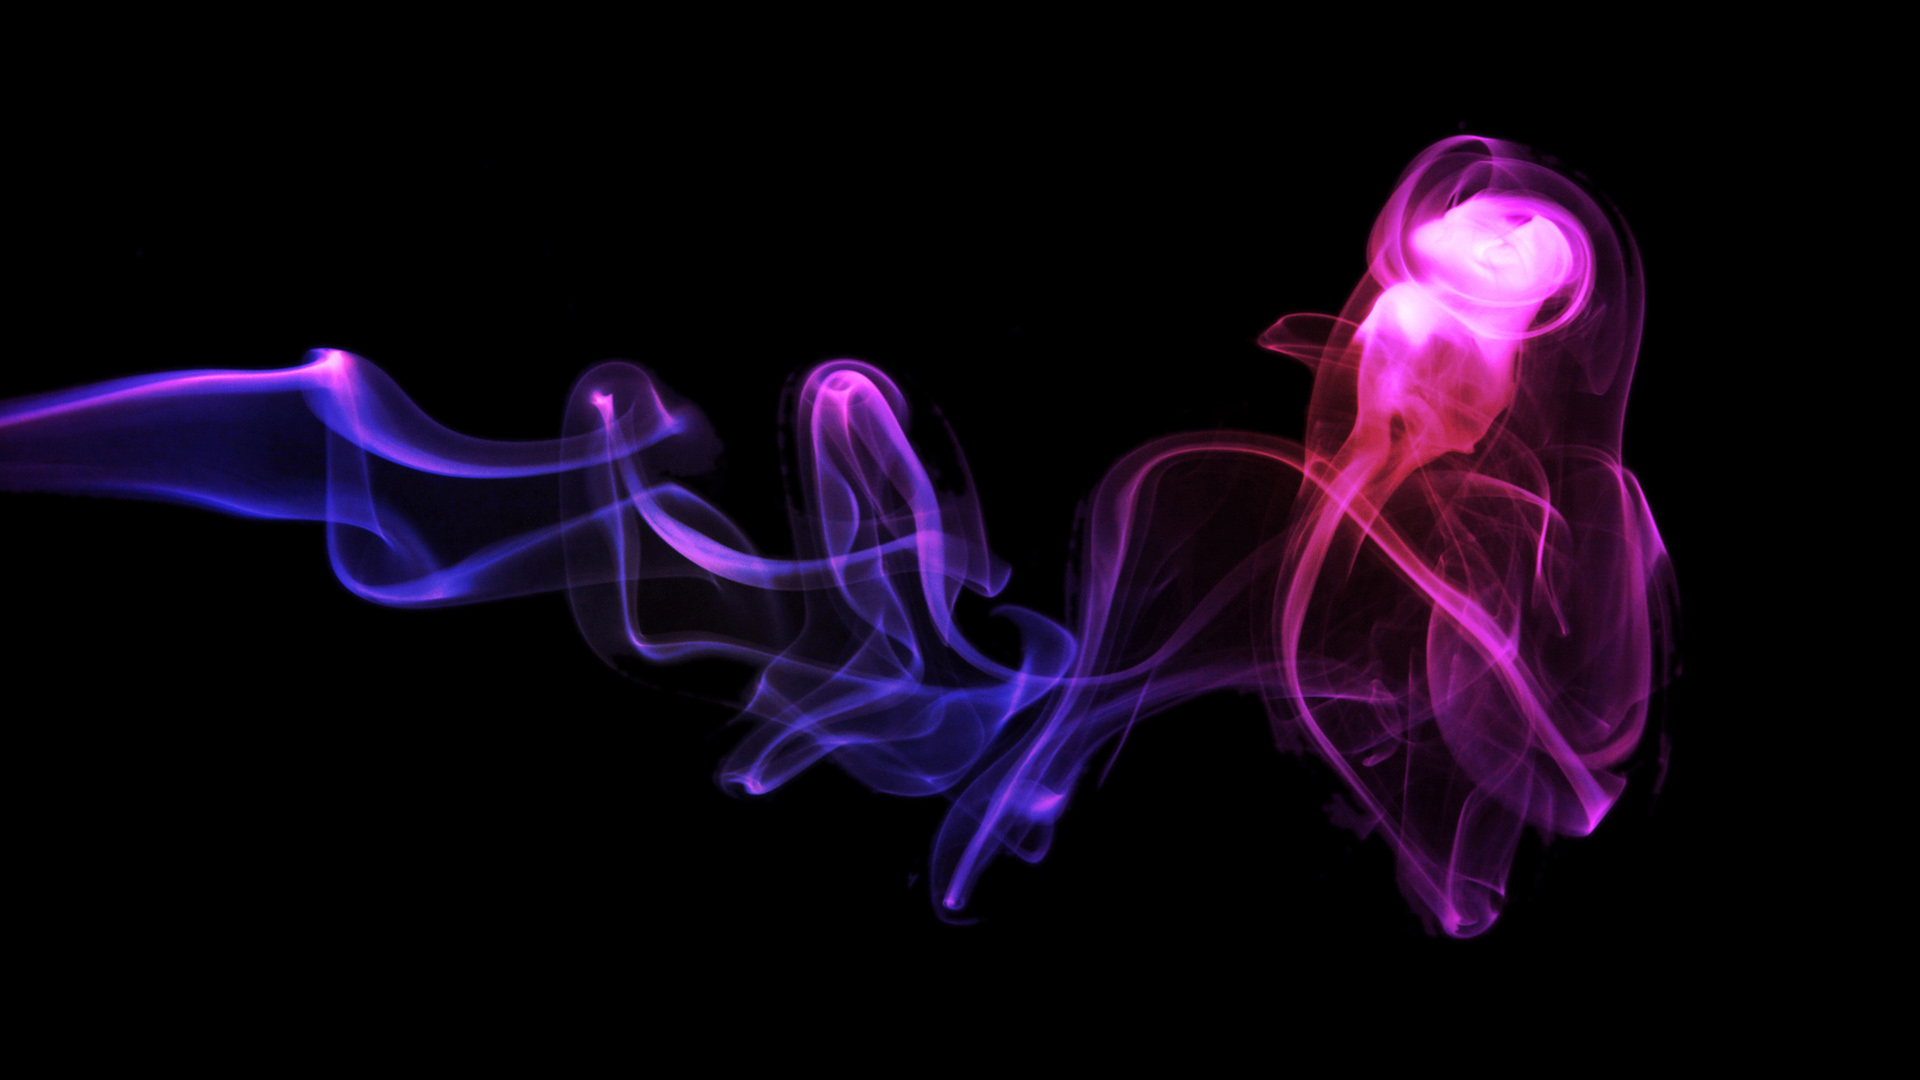 Pink Smoke Wallpapers